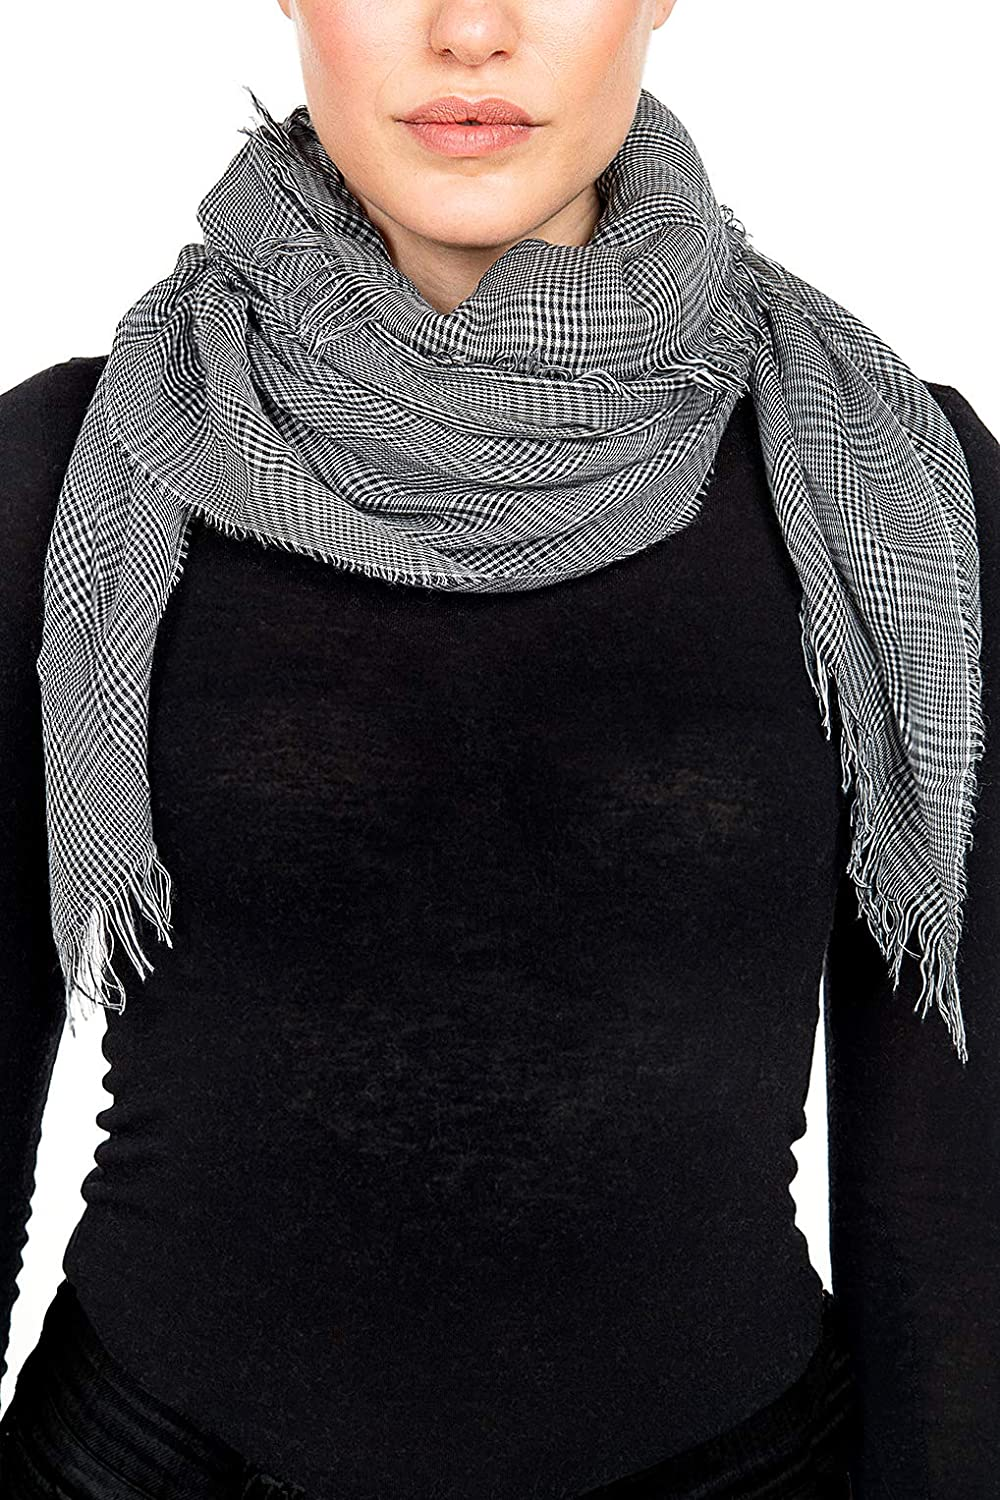 276b115a8 GIULIA BIONDI 100% made in Italy Organic Cashmere Blend Scarf Square Shawl  Wrap Soft Warm Lightweight for Women and Men at Amazon Men's Clothing store: